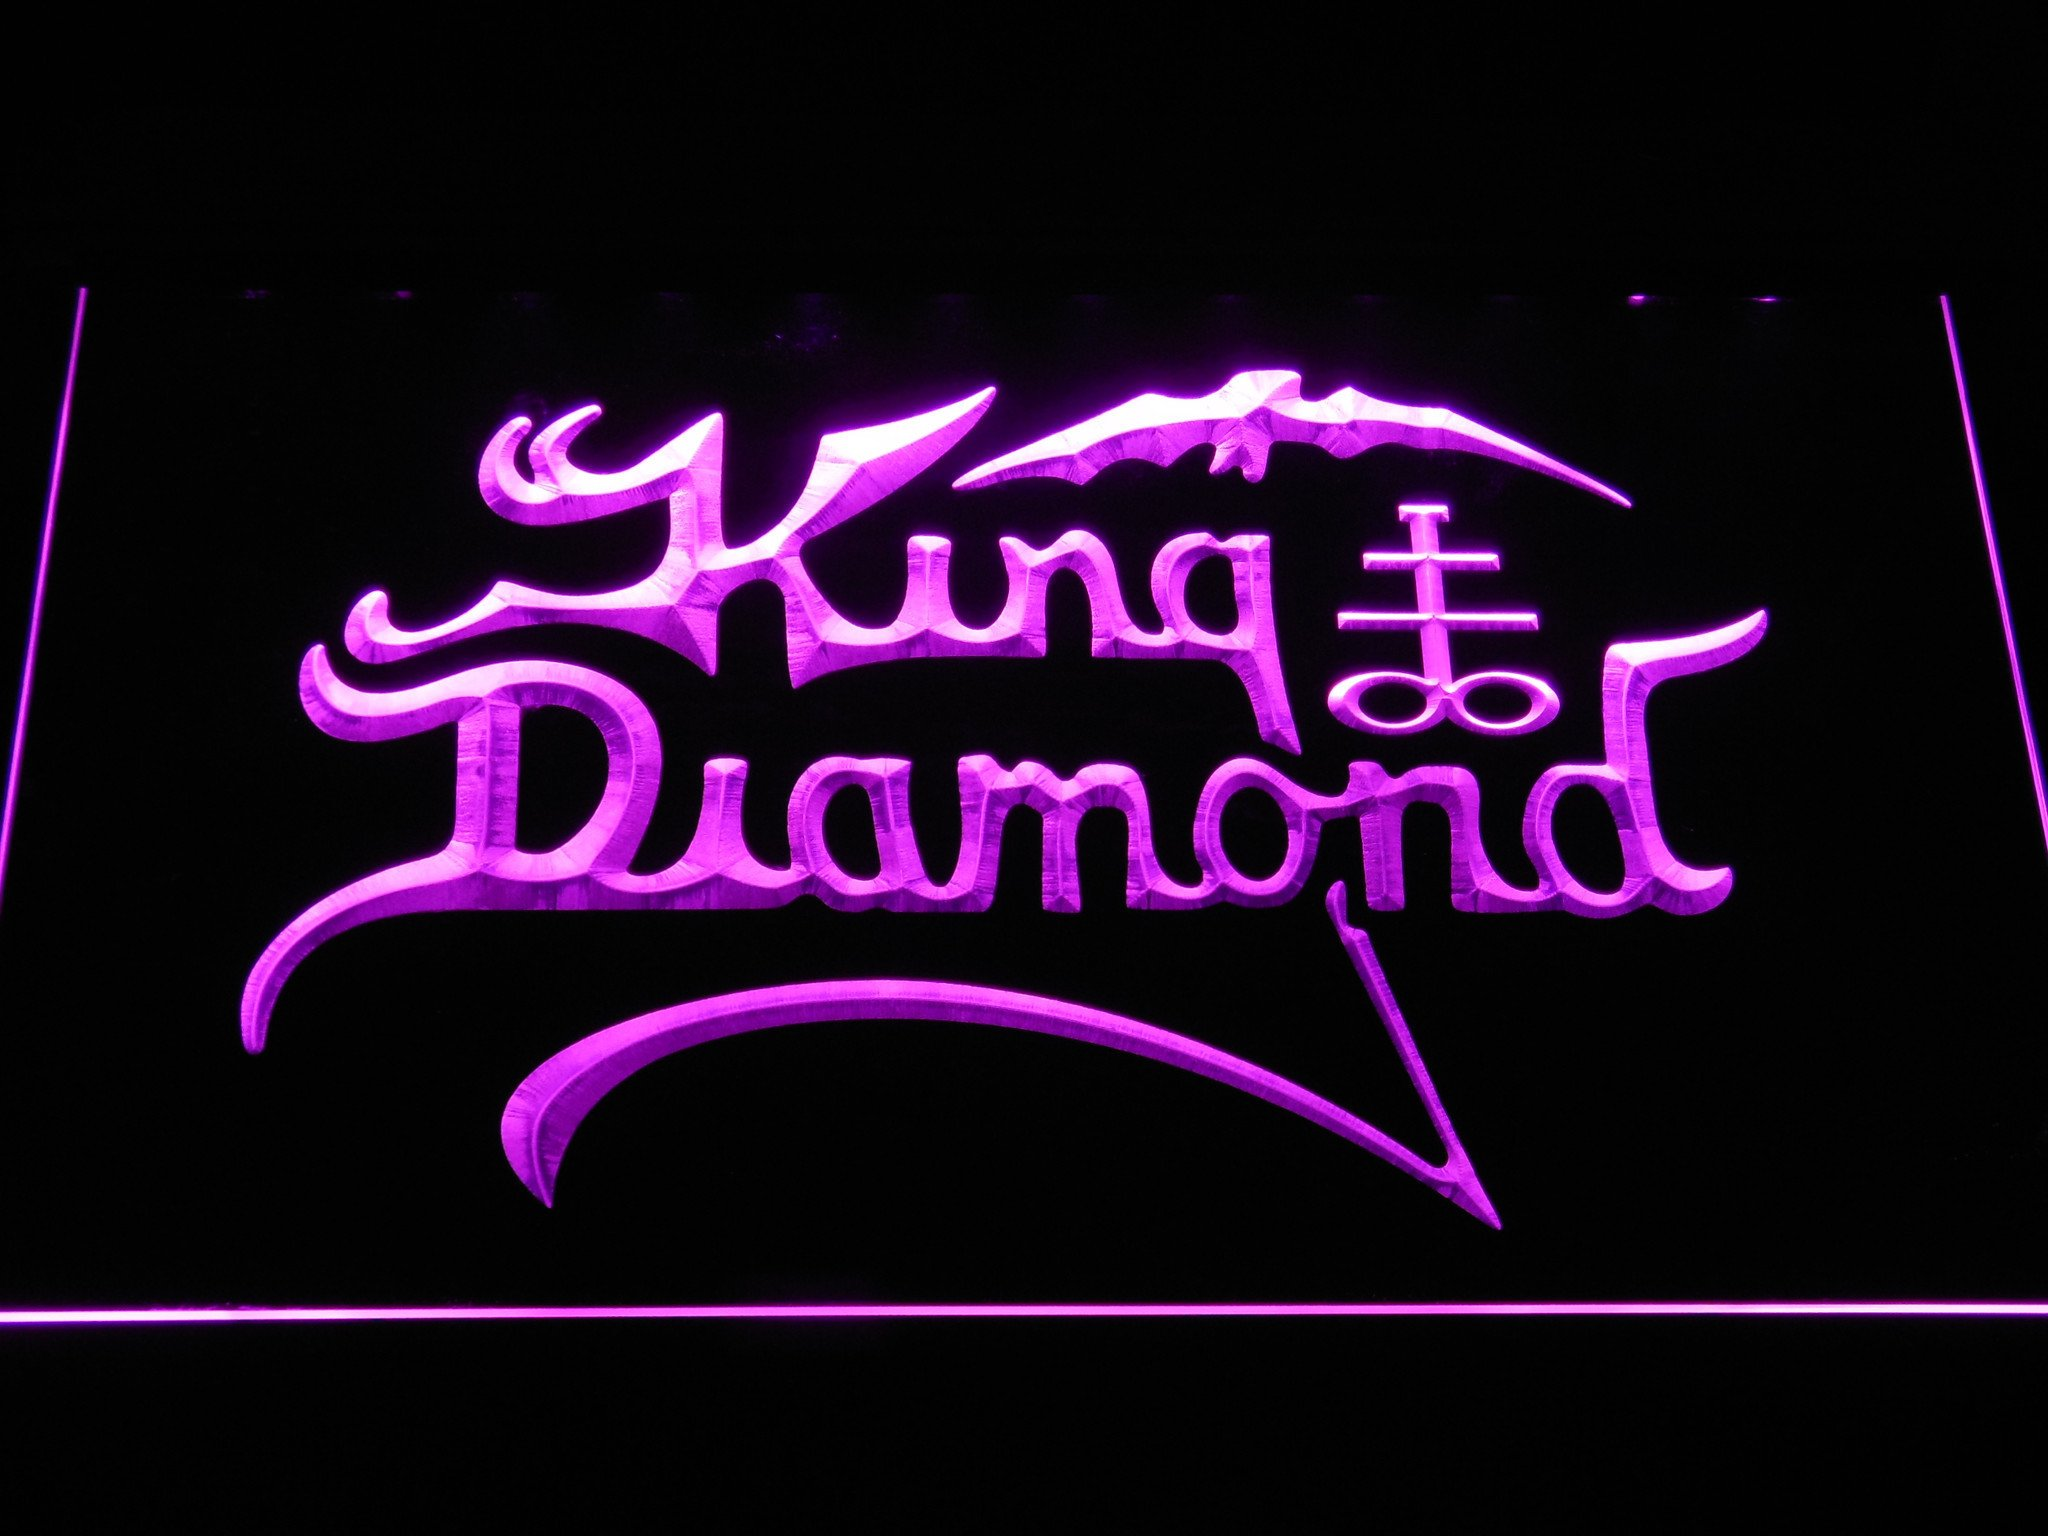 King Diamond The Puppet Master 1695924 Hd Wallpaper